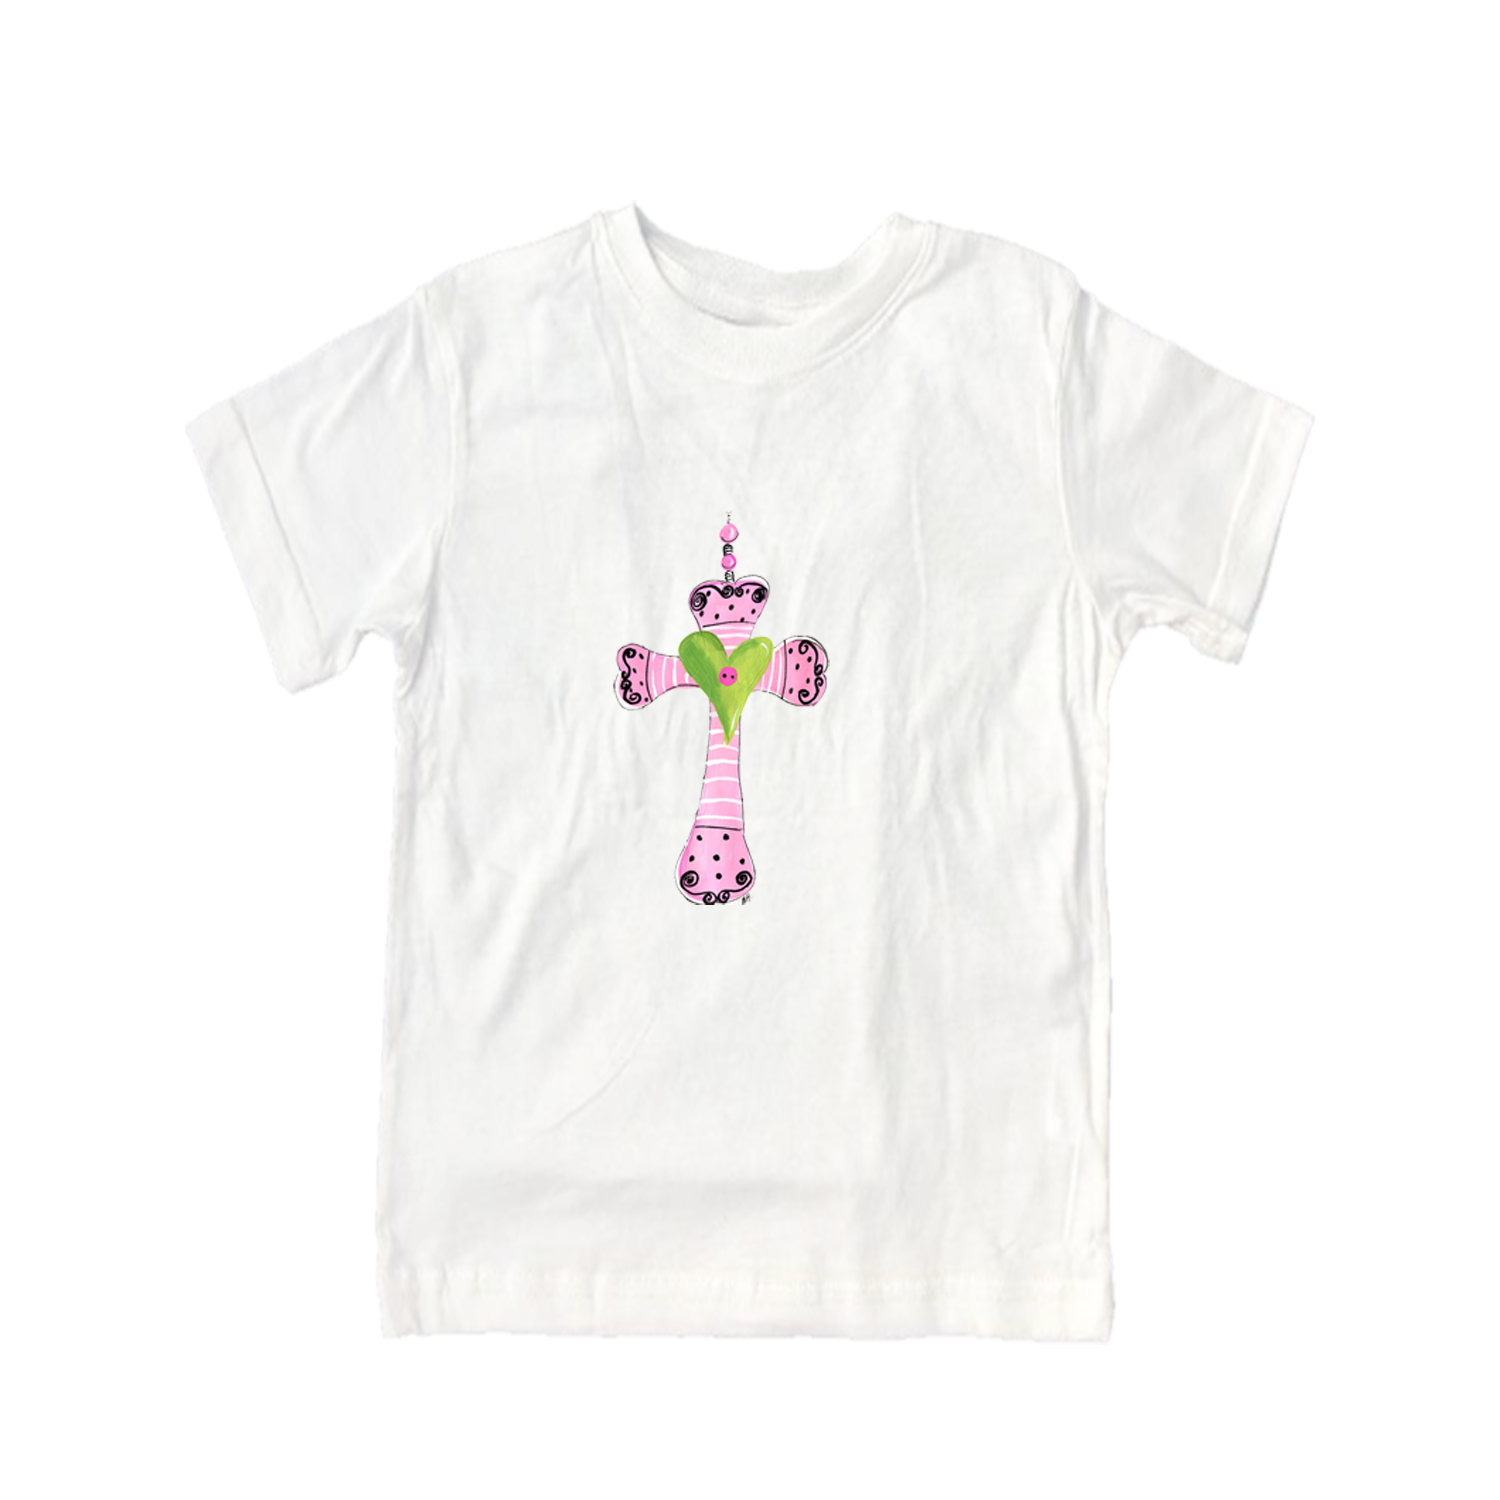 Girls Tee Shirt TS859